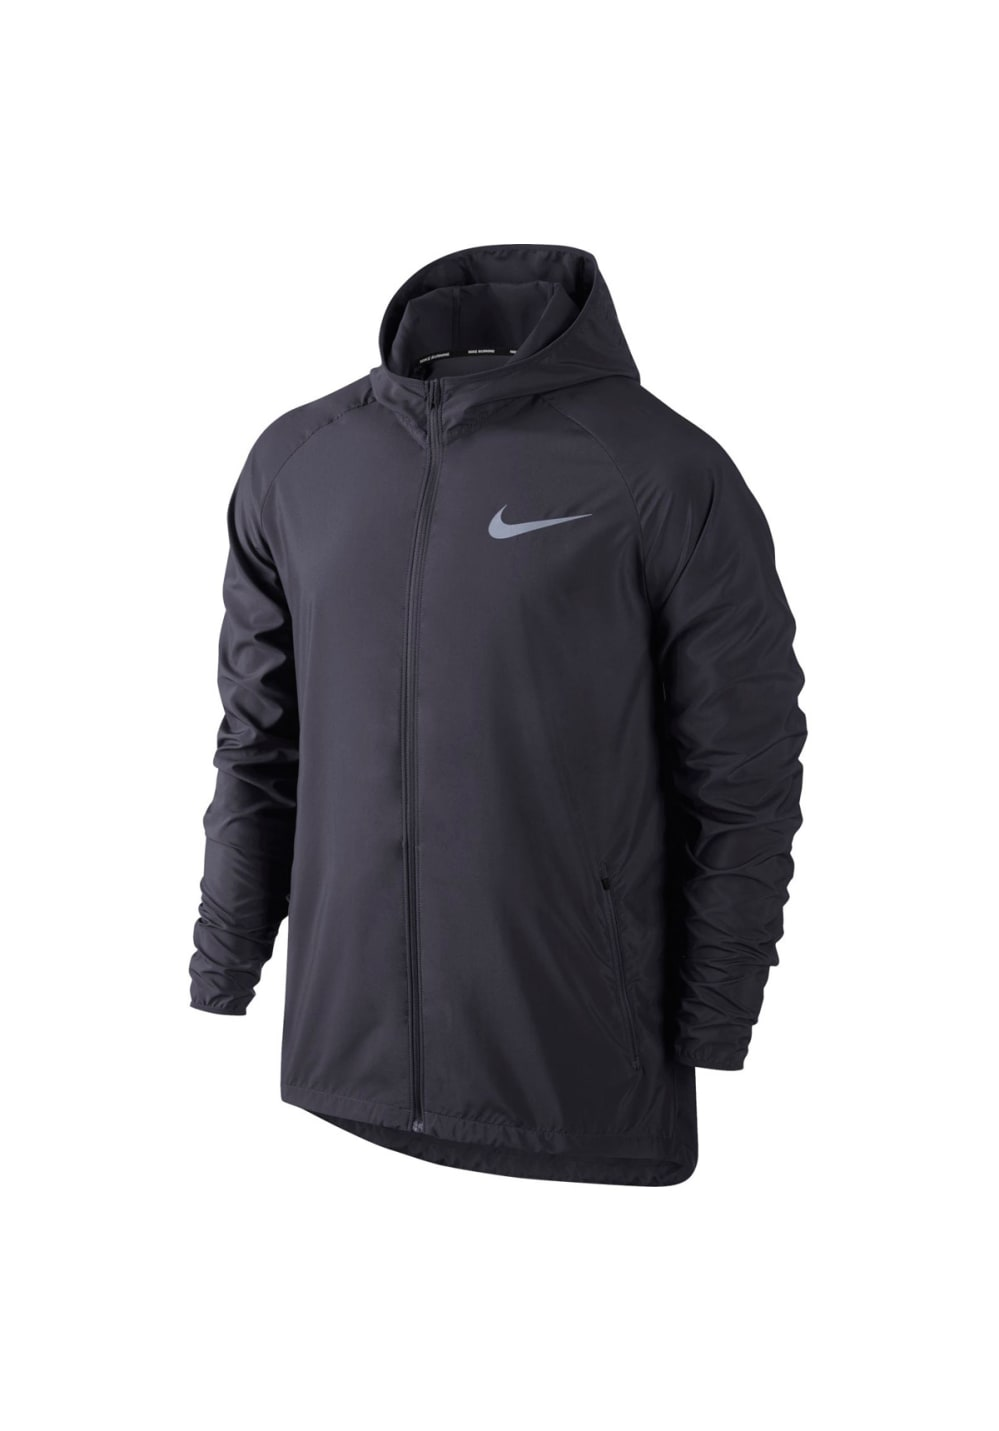 Jacket Running Vestes Homme Hooded Nike Pour Essential Course SnxqfS6t7